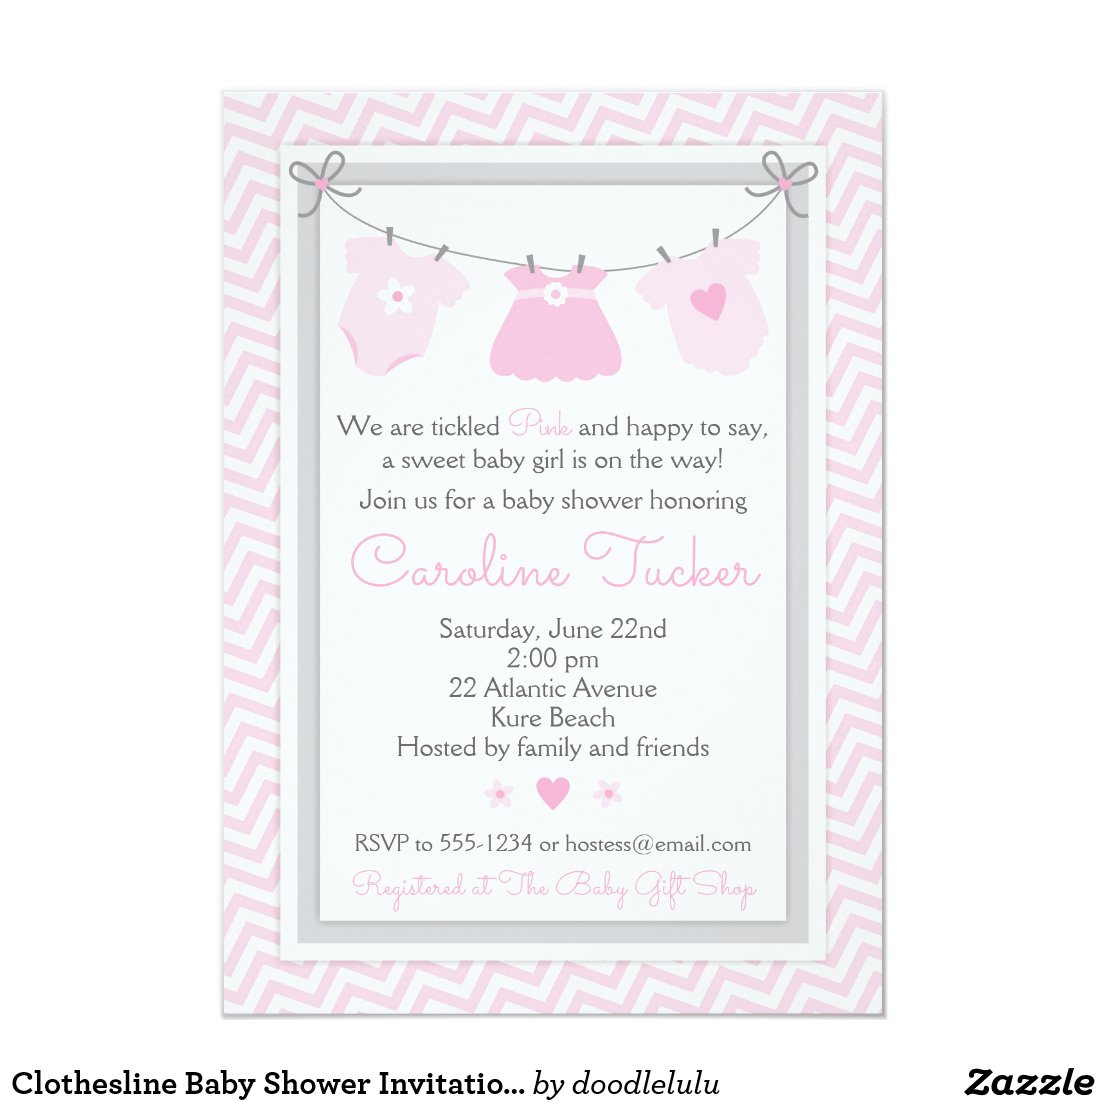 Clothesline Baby Shower Invitation pink and gray